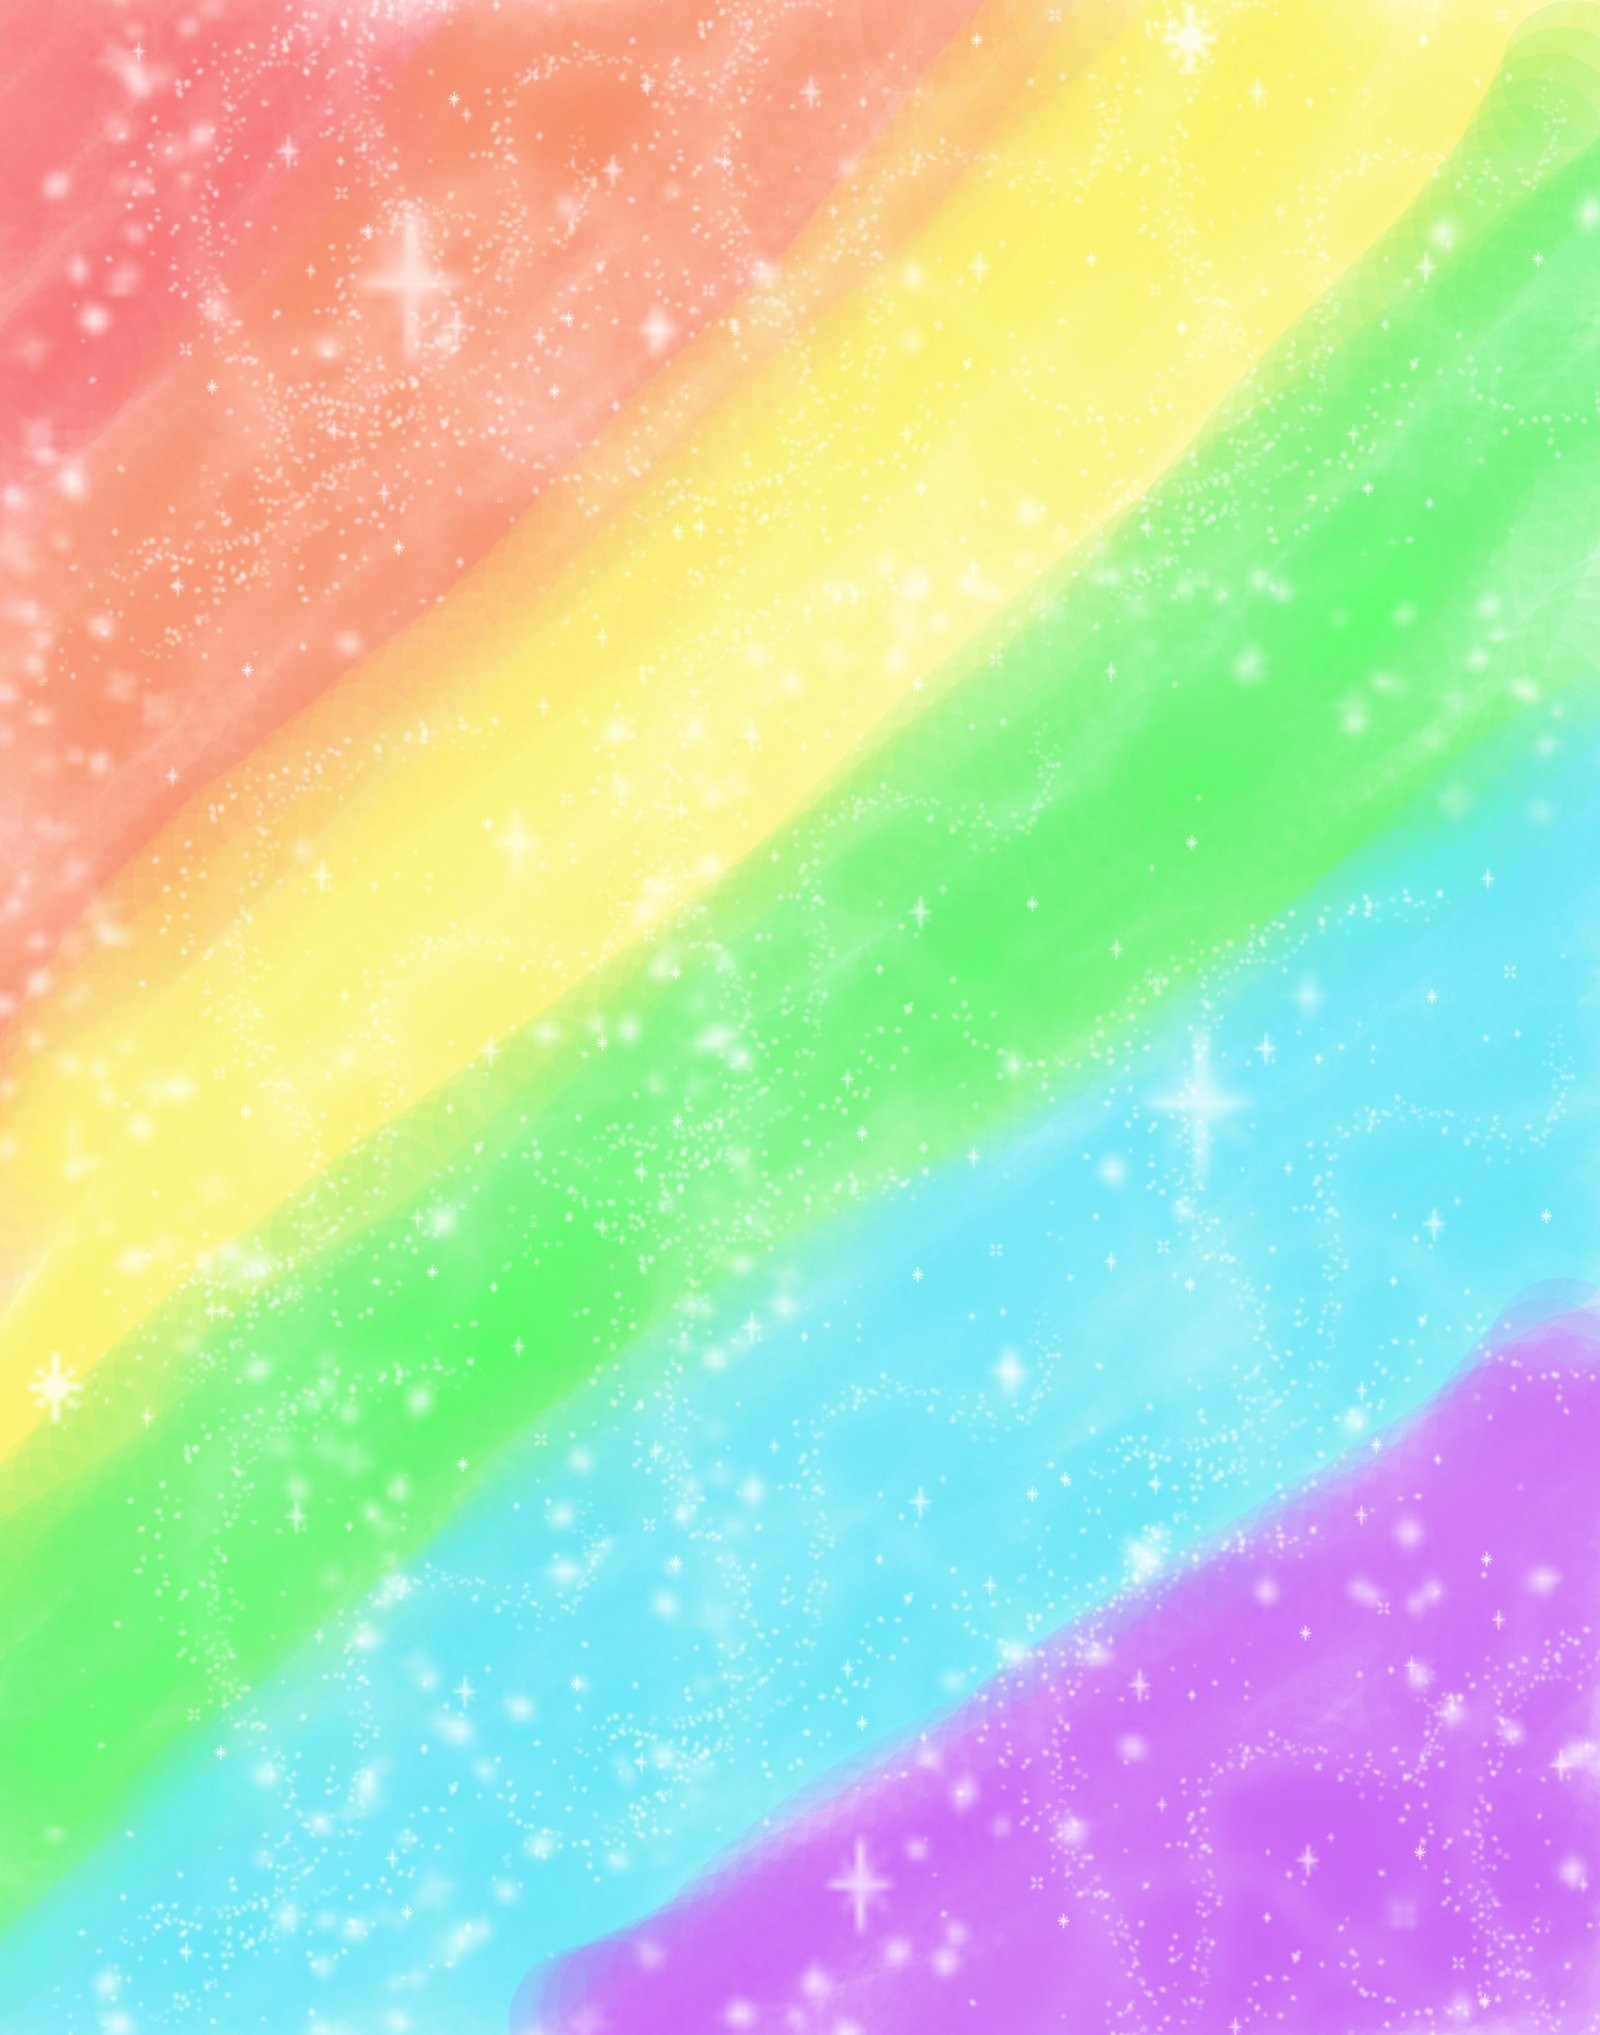 rainbow background download free awesome hd backgrounds for